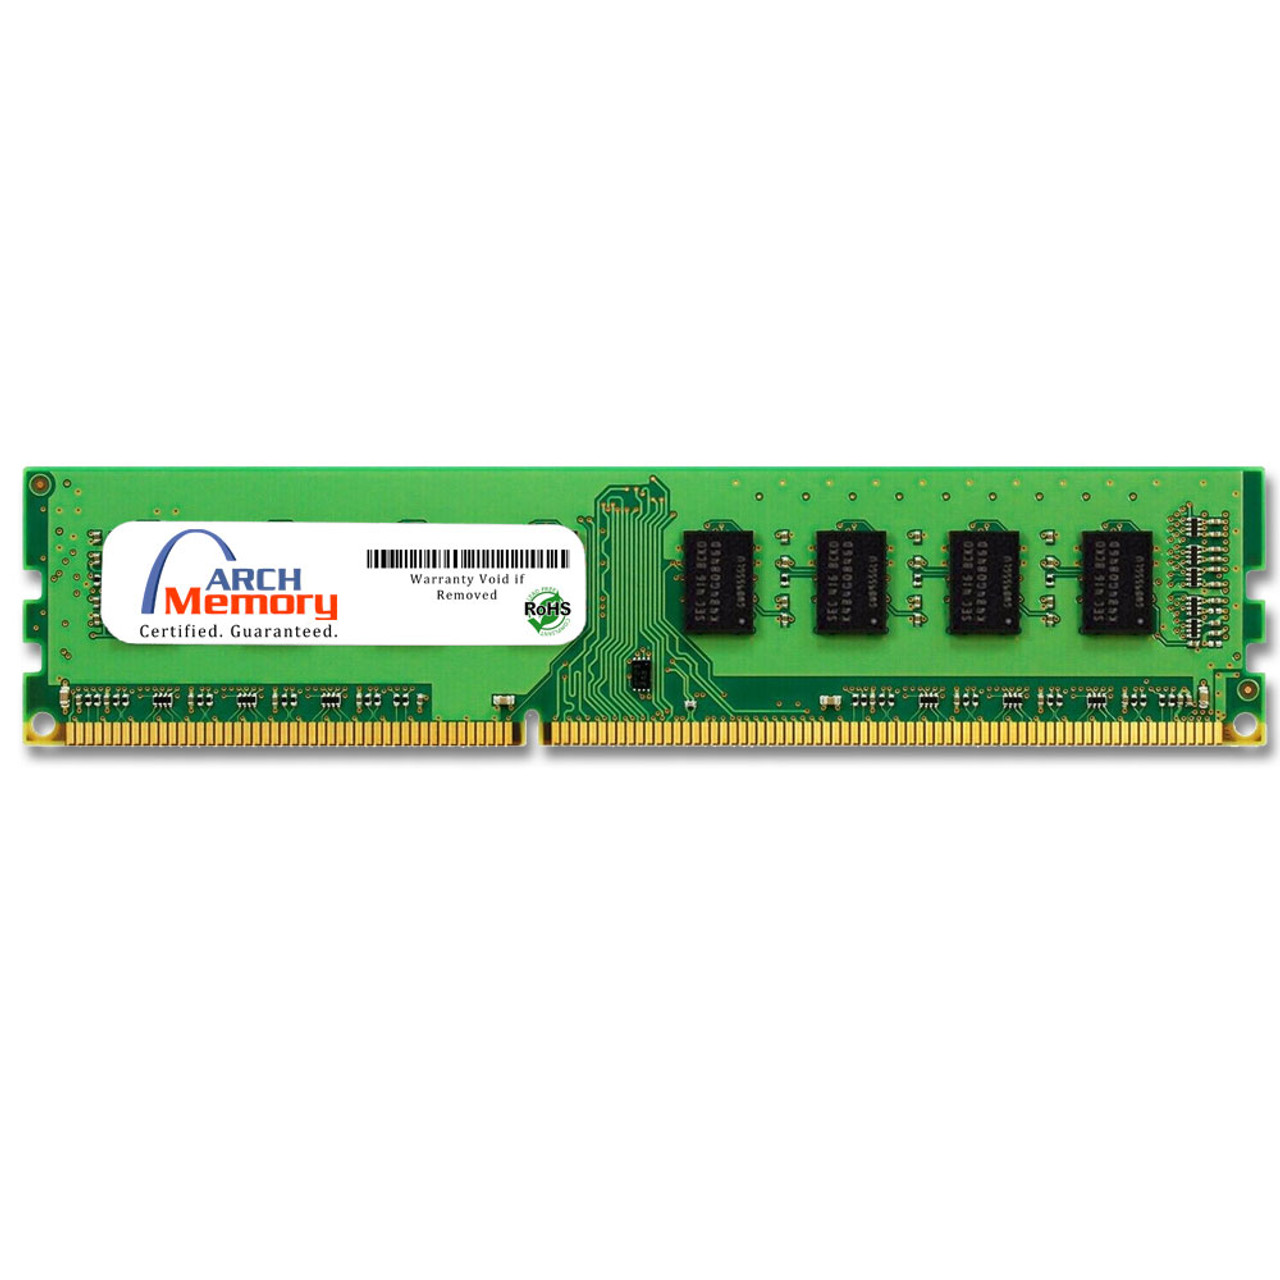 4GB 240-Pin DDR3L-1600 PC3L-12800 1.35v UDIMM RAM